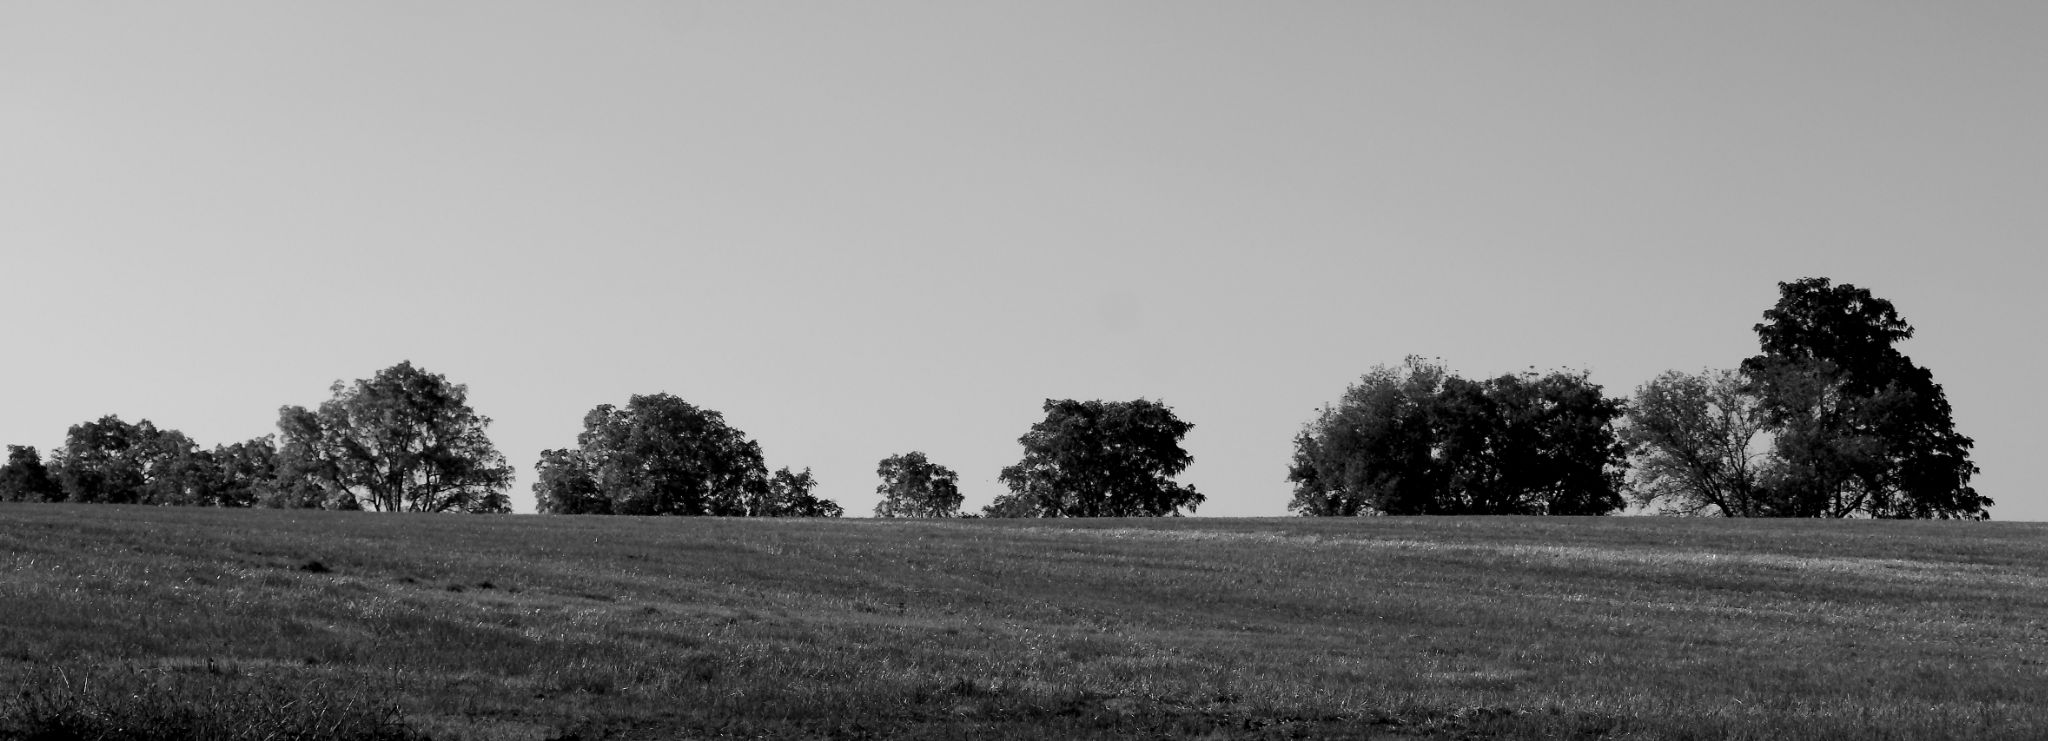 Field of Trees by JaniceArnottPhotography